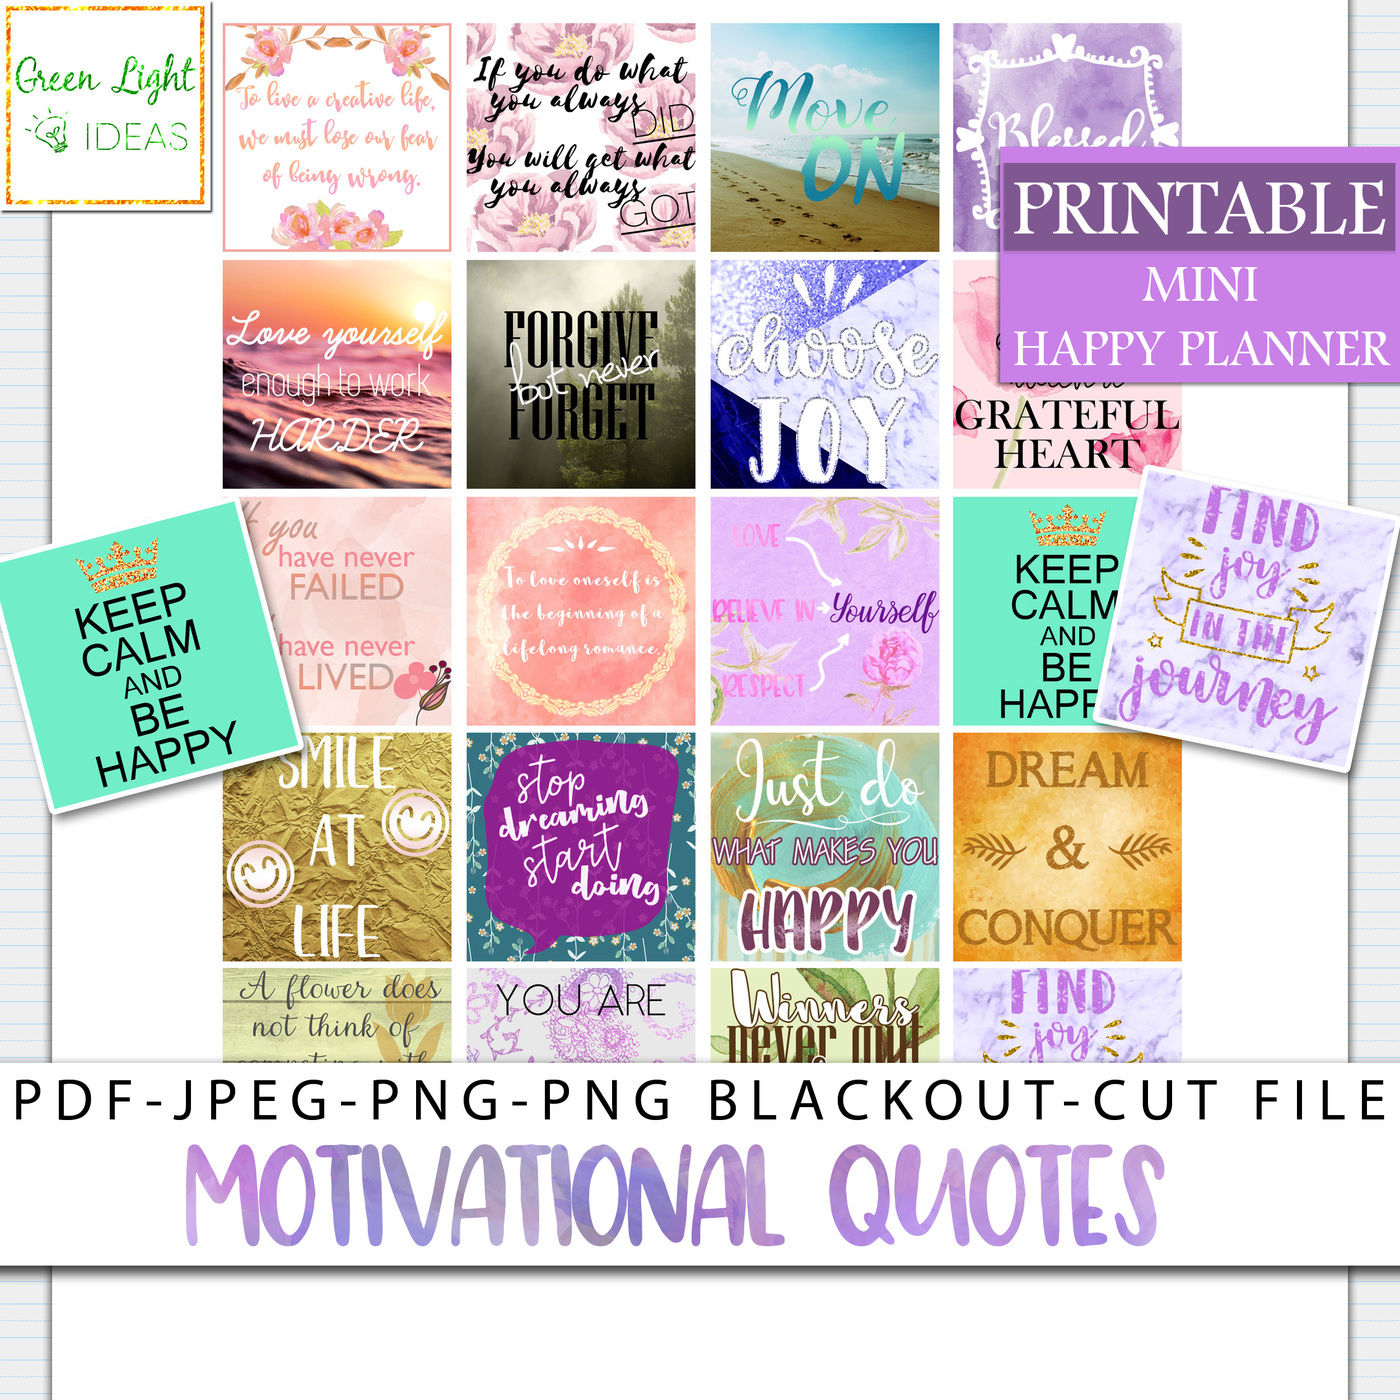 Motivational Quotes Mini Happy Planner Stickers By Green Light